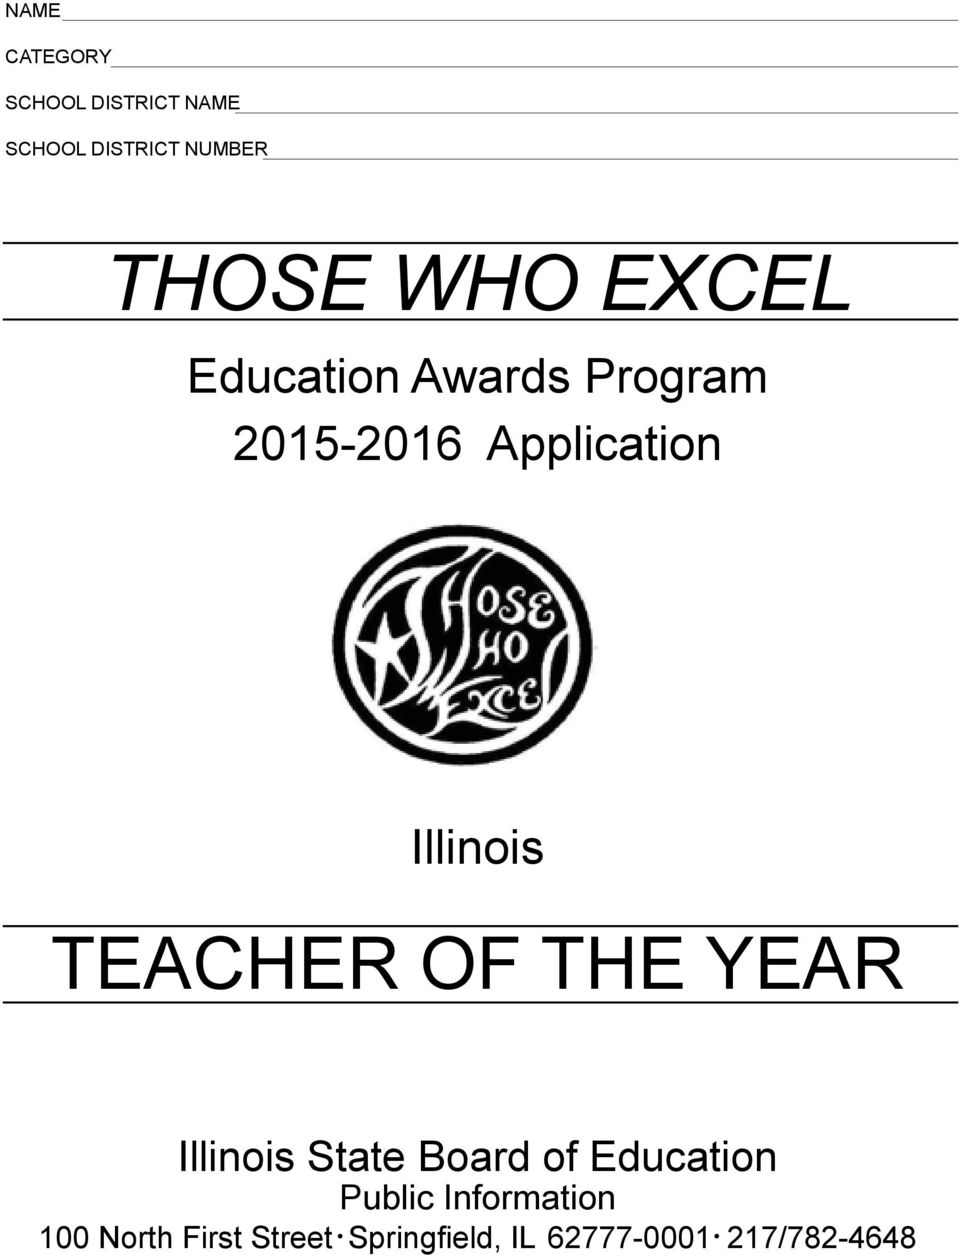 TEACHER OF THE YEAR Illinois State Board of Education Public